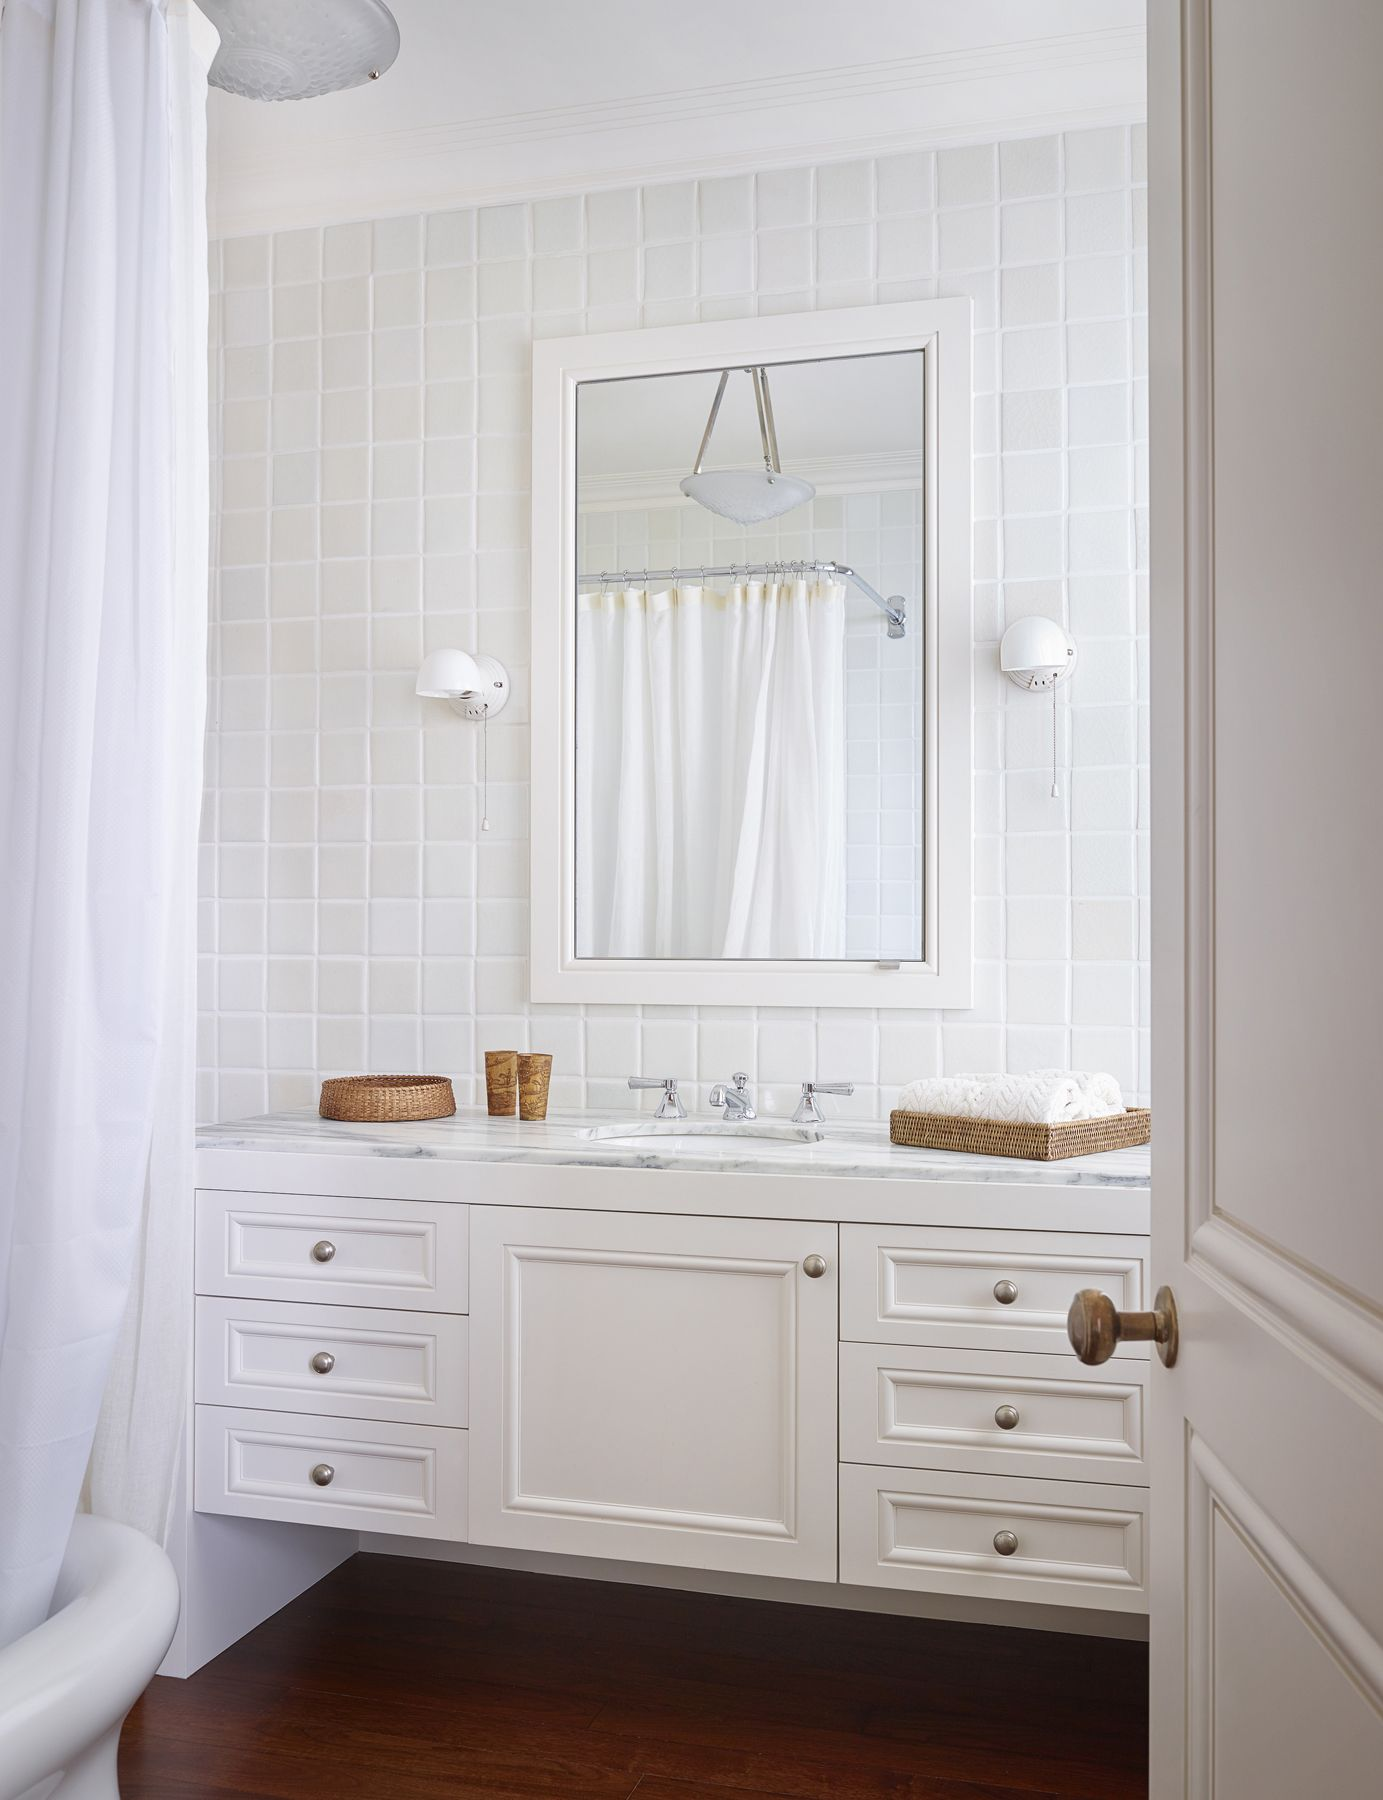 Chic Bathrooms With Floating Vanities Floating Vanity Ideas